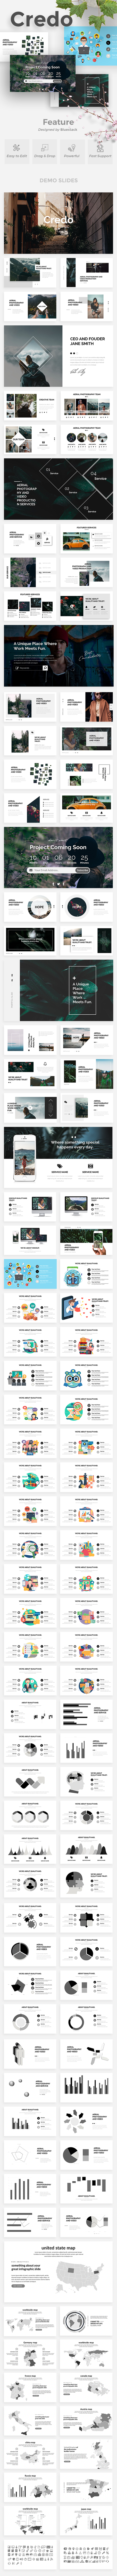 Credo Creative Powerpoint Template - Creative PowerPoint Templates